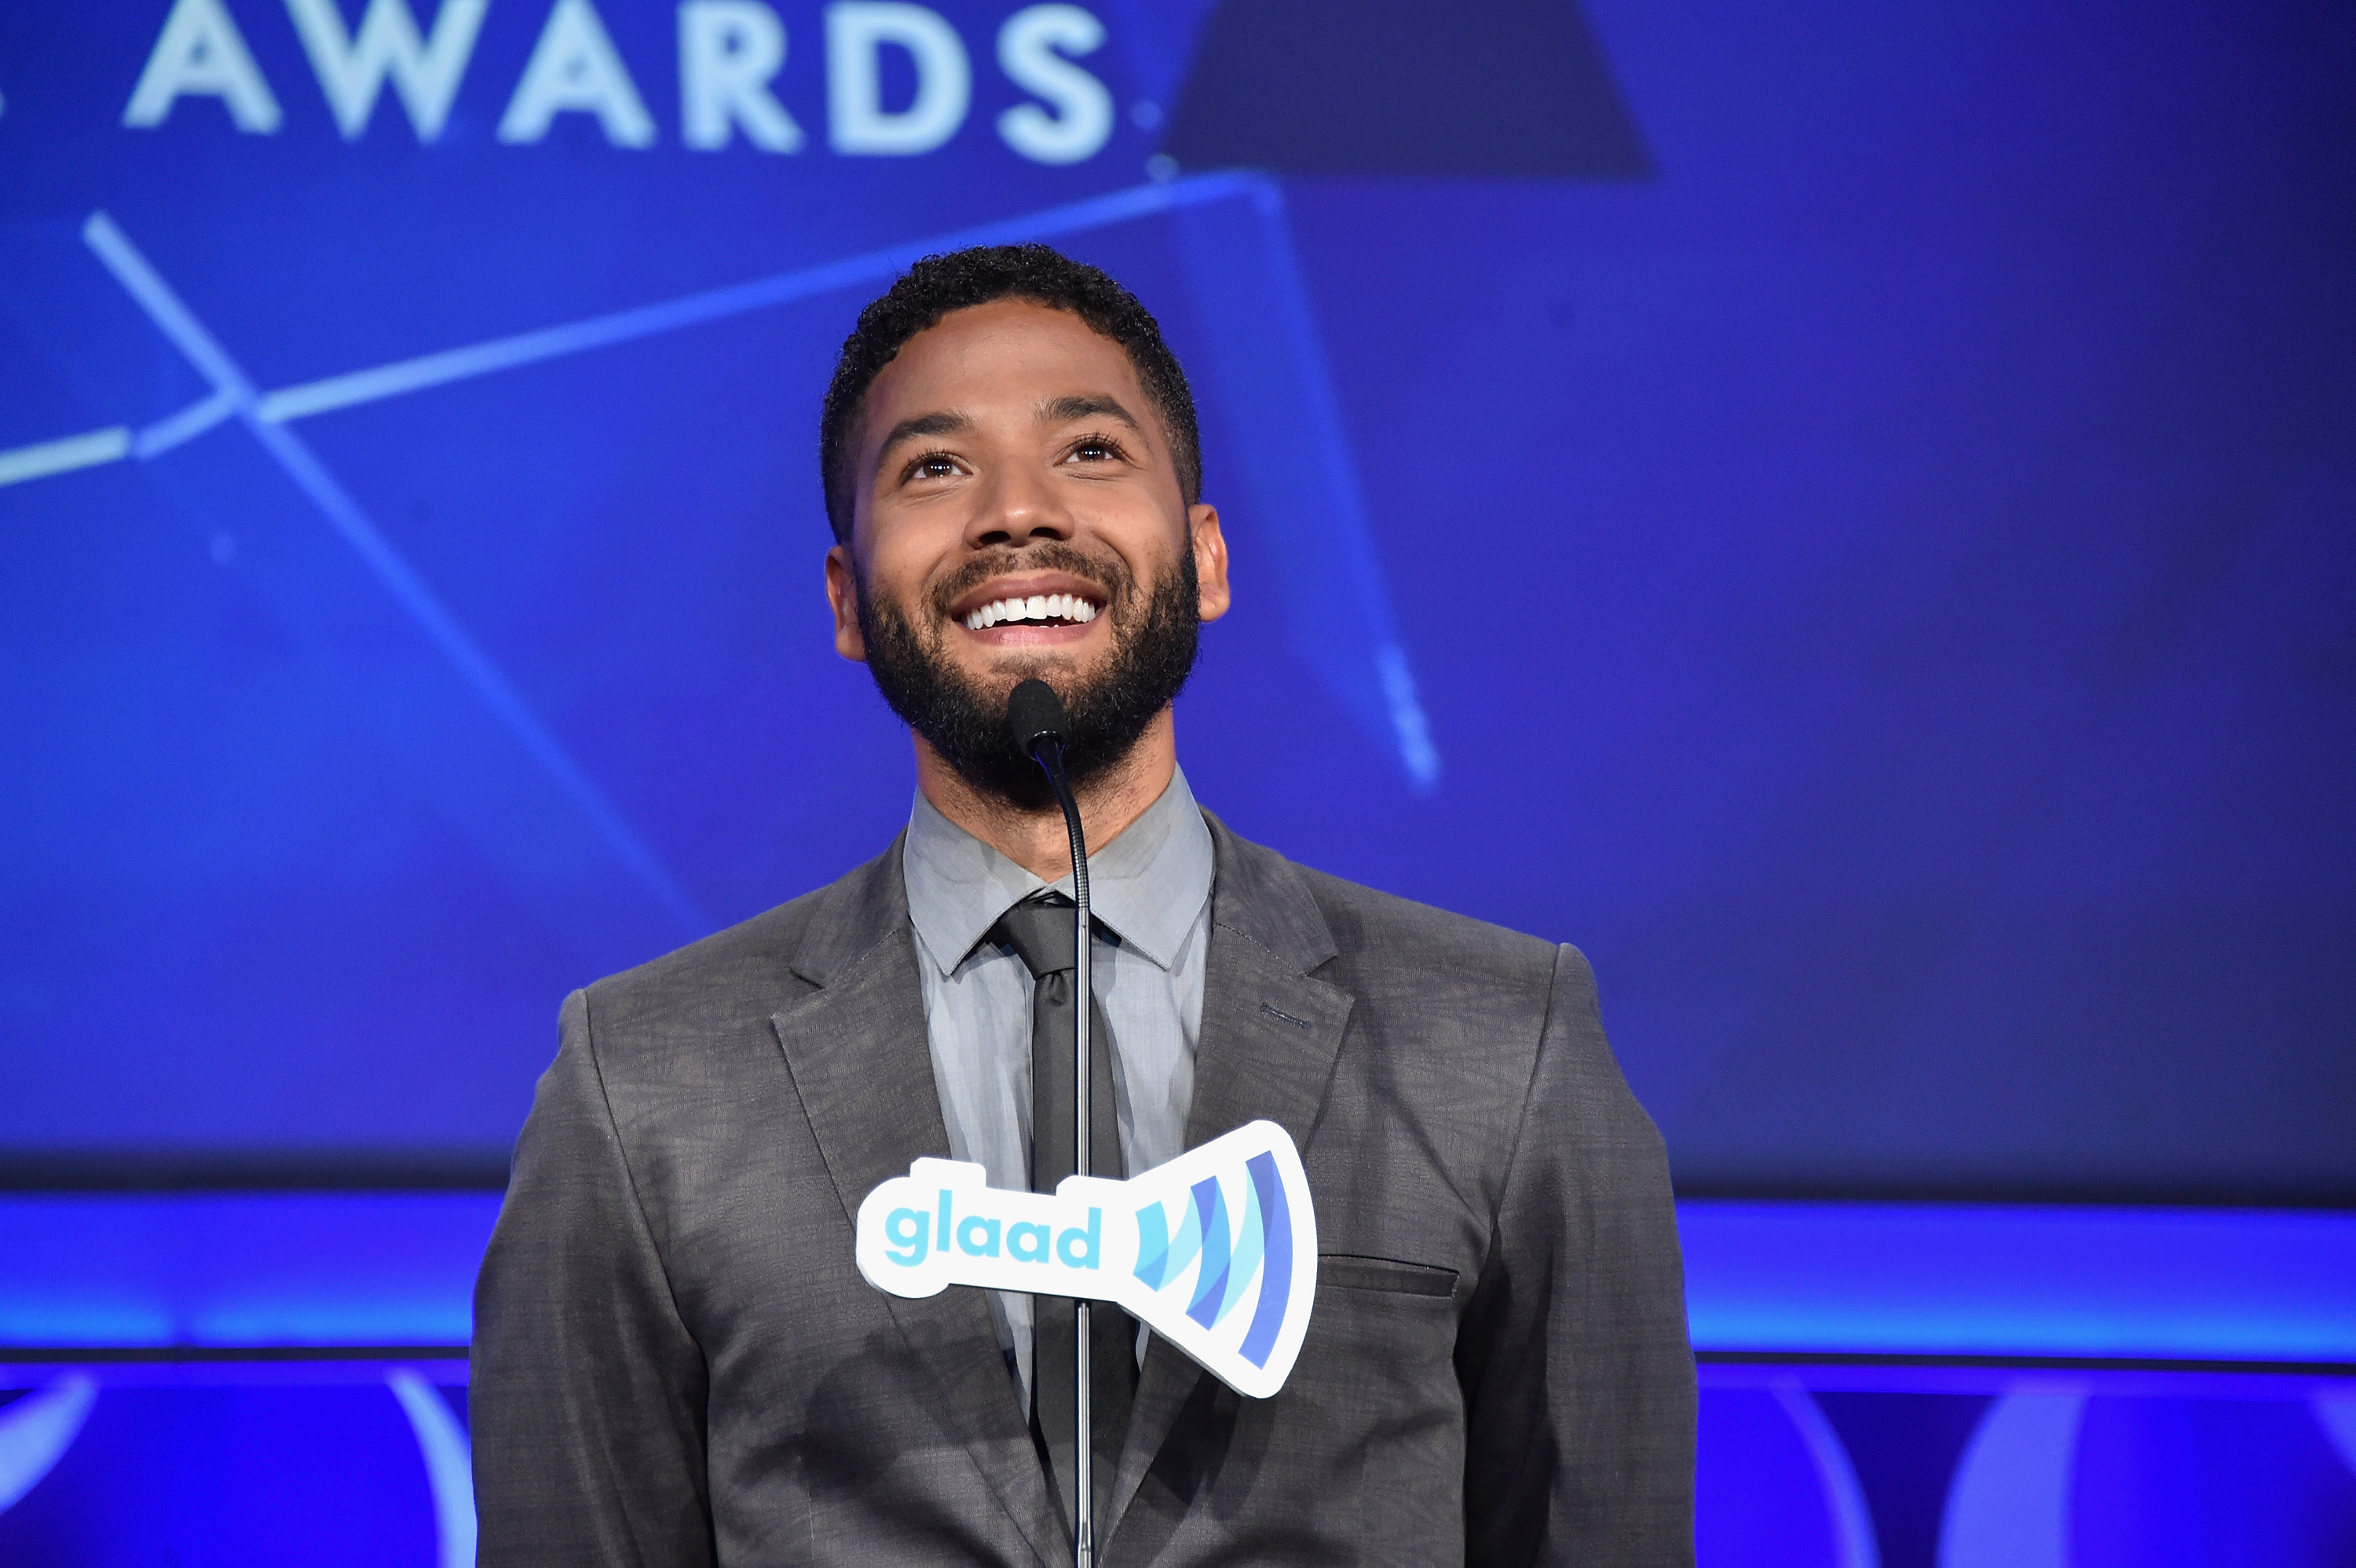 Photo by Mike Coppola/Getty Images for GLAAD